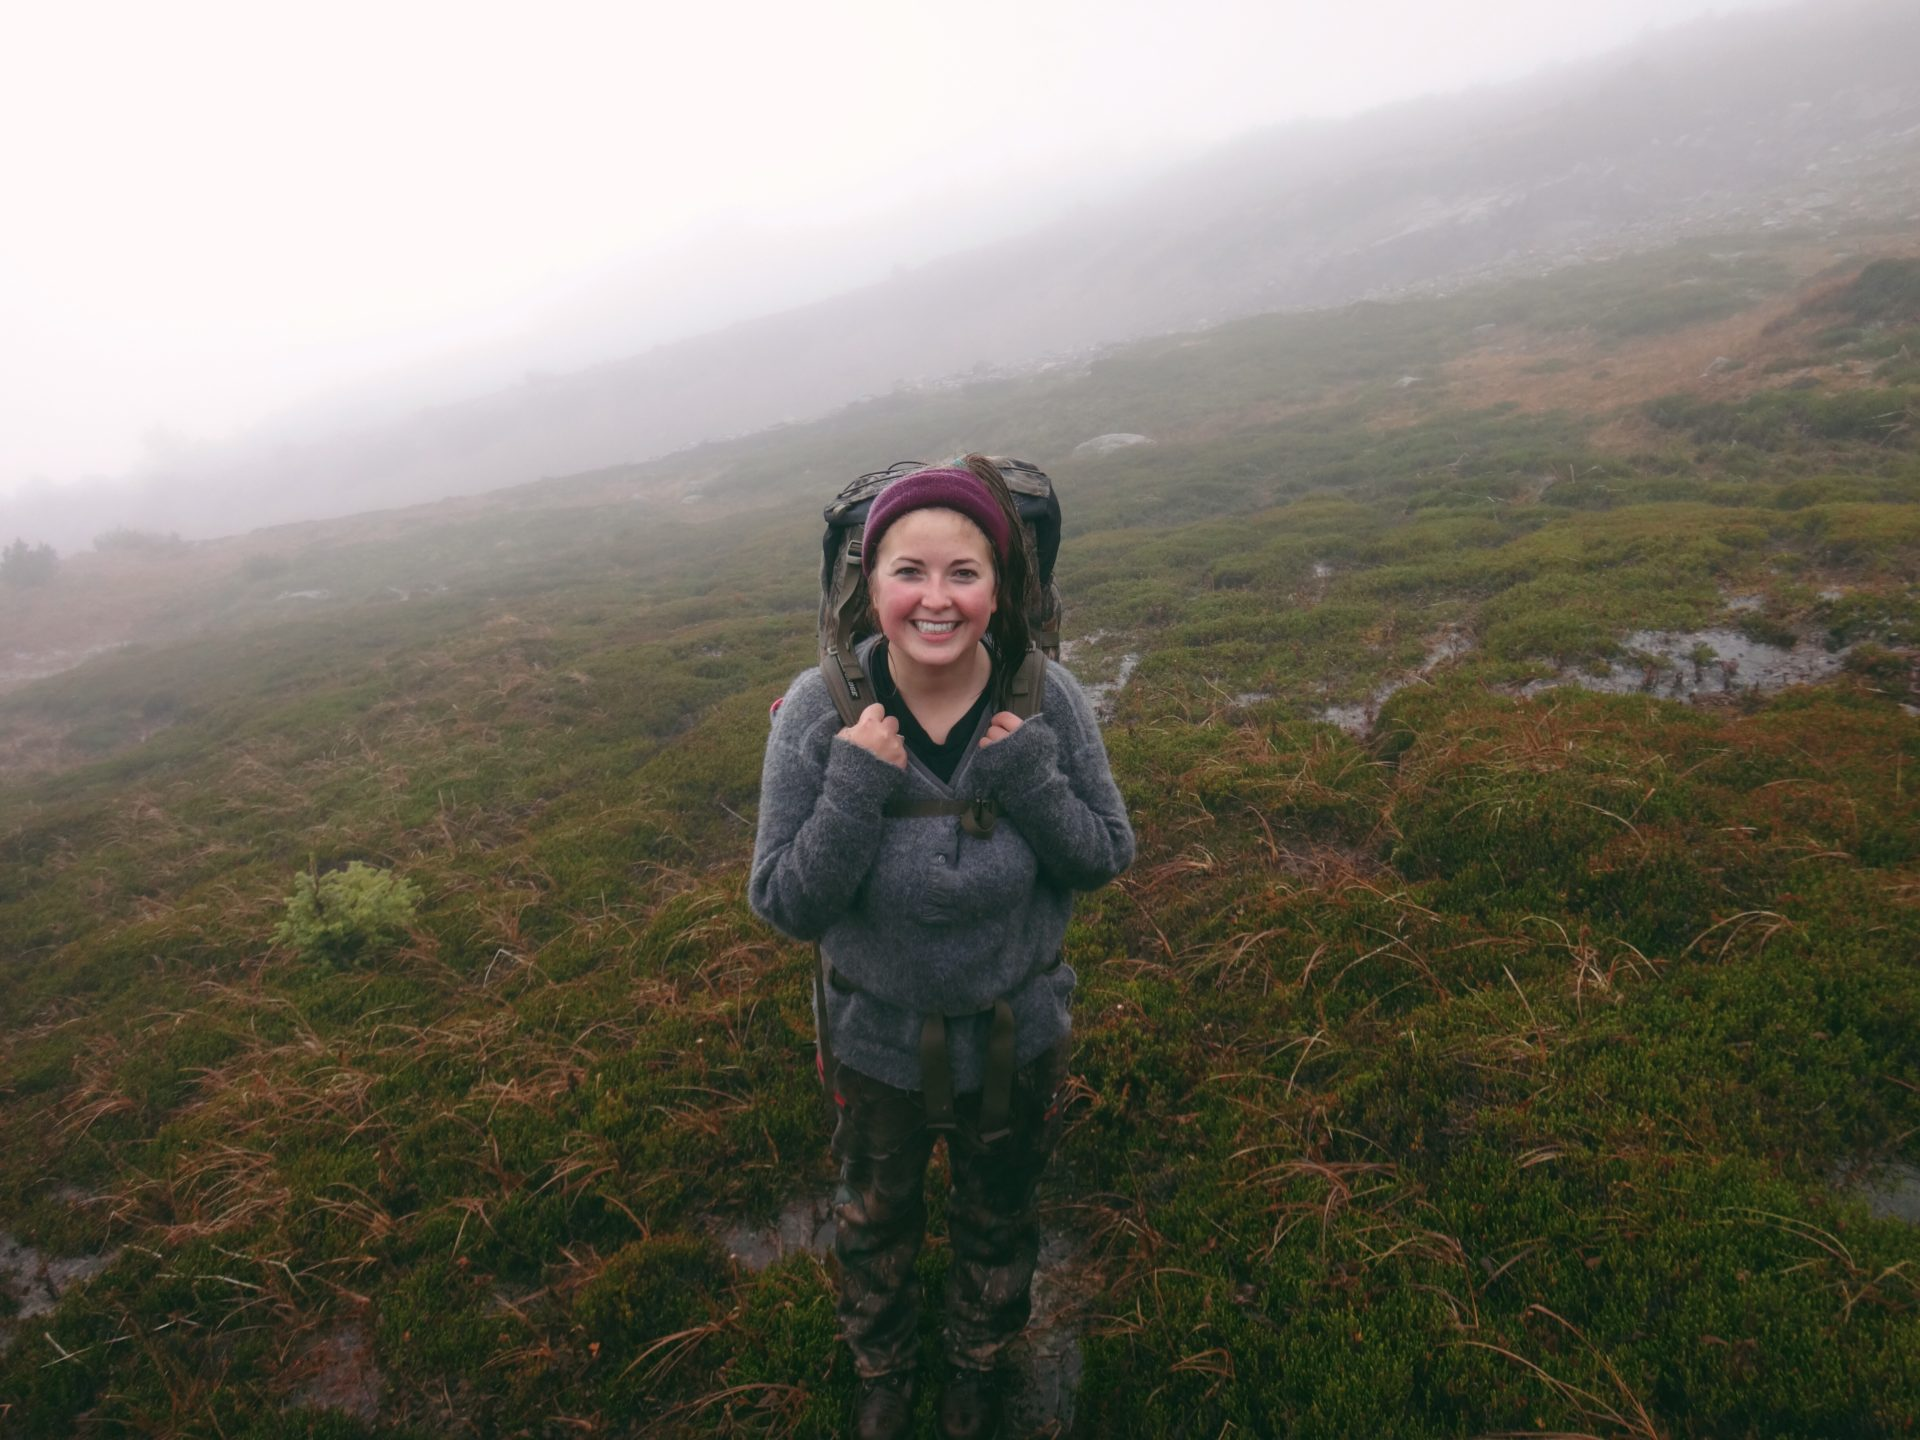 Despite the rain and fog, I was all smiles at the top of the mountain.